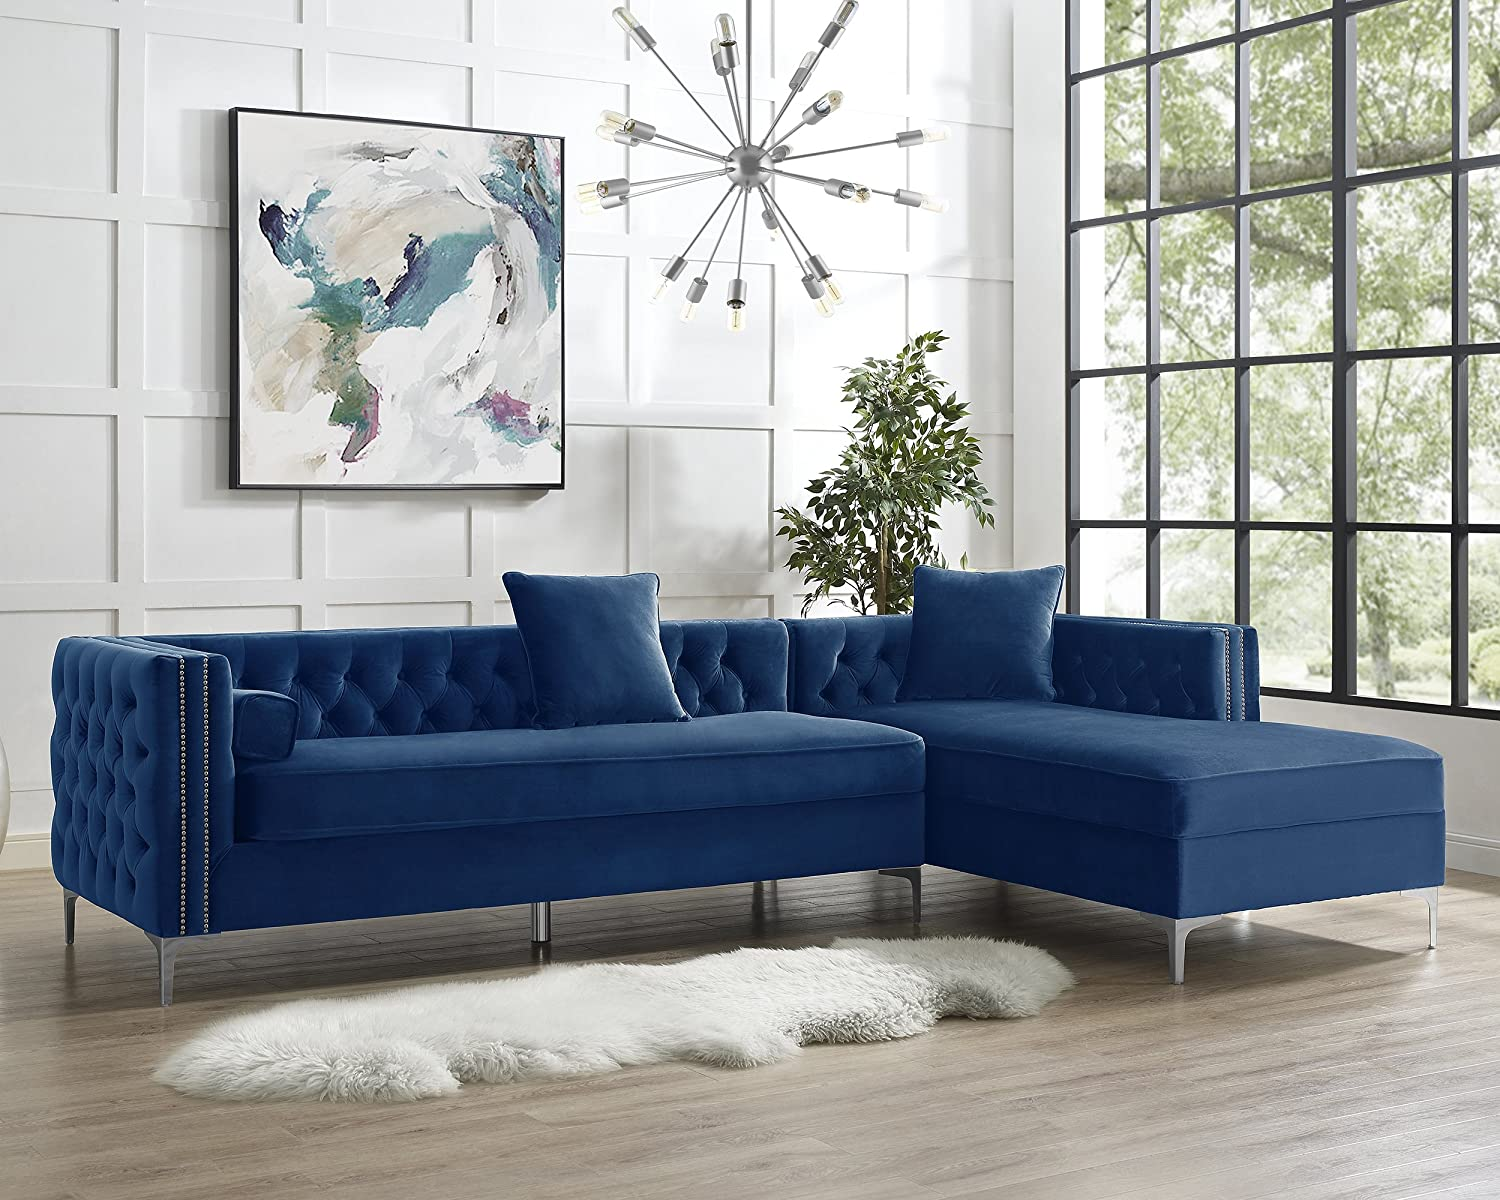 Inspired home giovanni collection velvet modern button tufted with silver nail head trim right facing hidden storage chaise sectional sofa 115 h navy